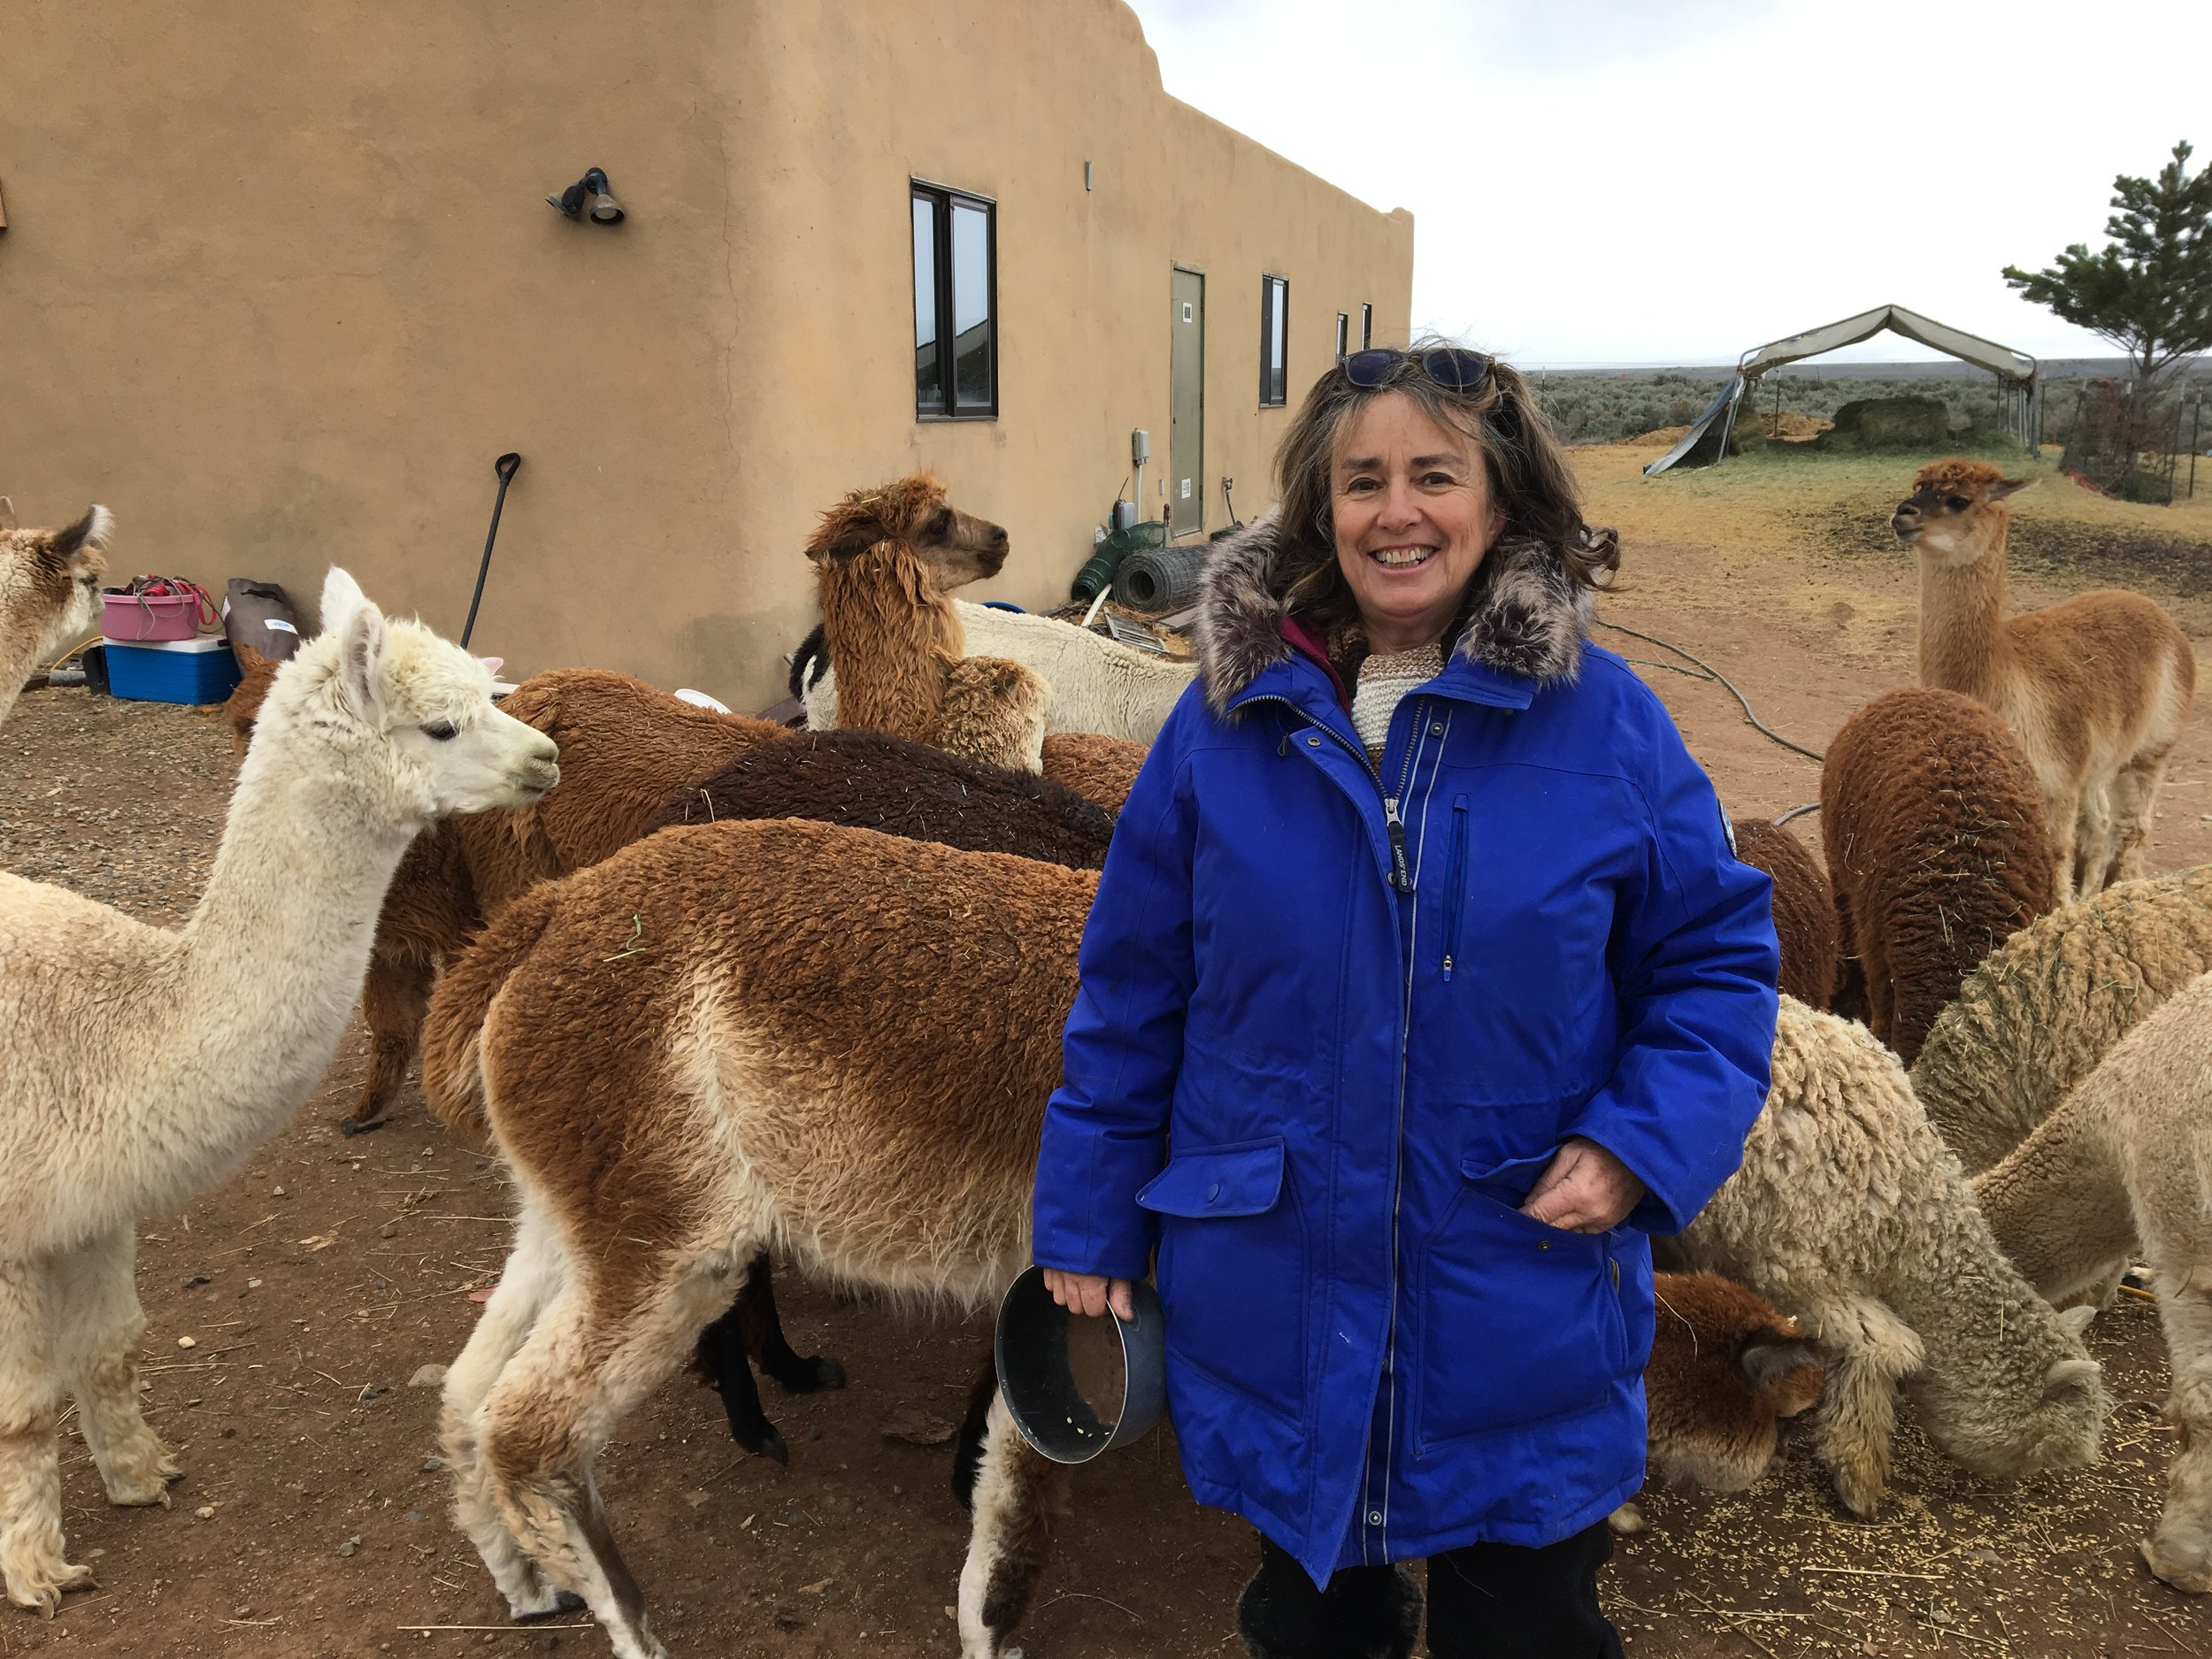 Frana wasn't always an alpaca farmer. She came to it later in her life and fell in love.